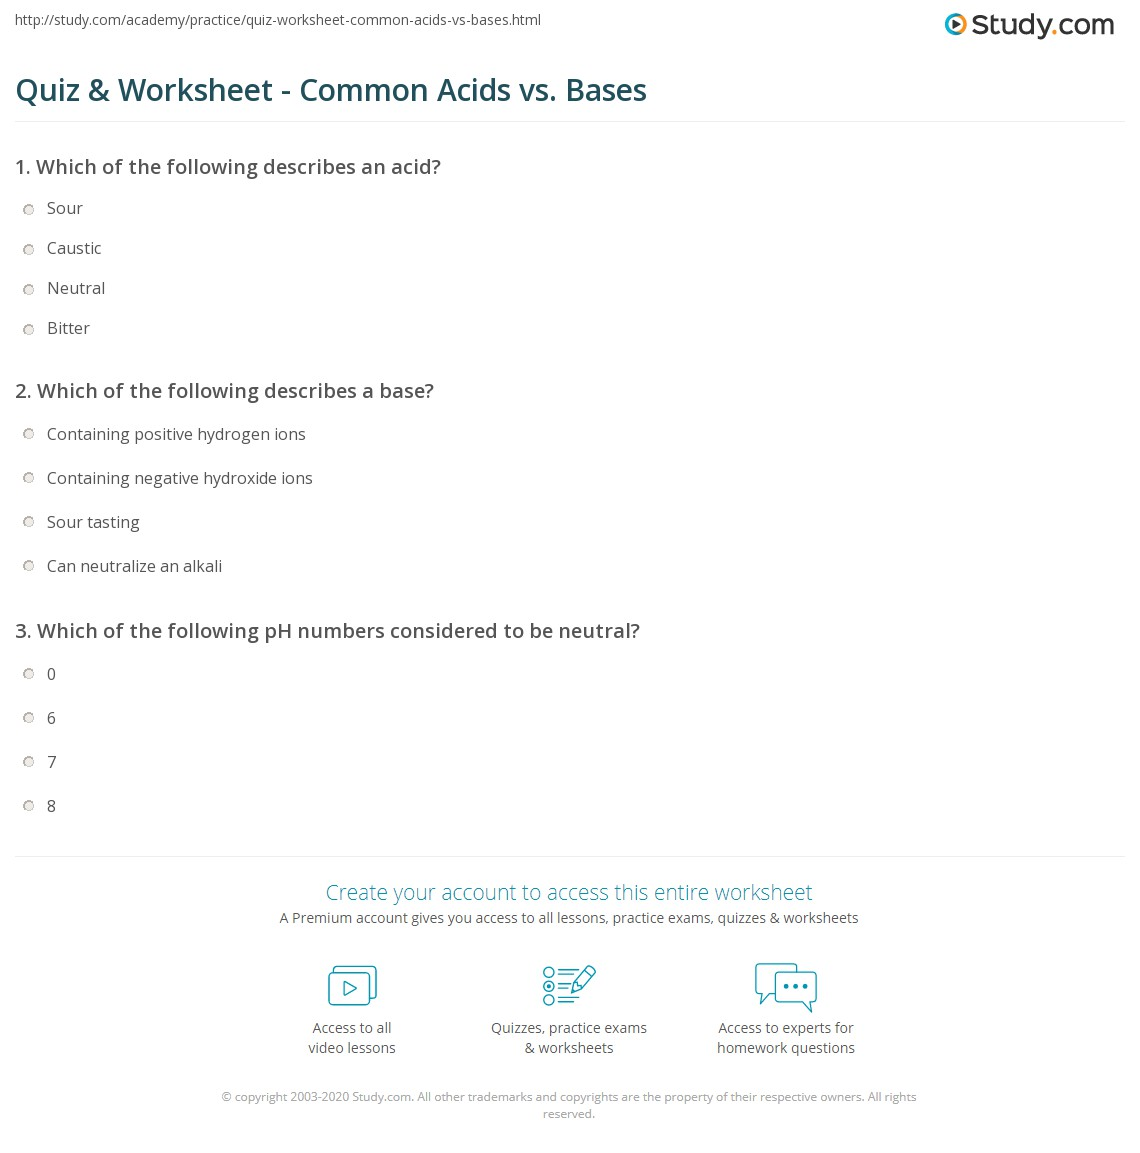 Worksheet Acids And Bases Worksheet Answers quiz worksheet common acids vs bases study com print comparing worksheet